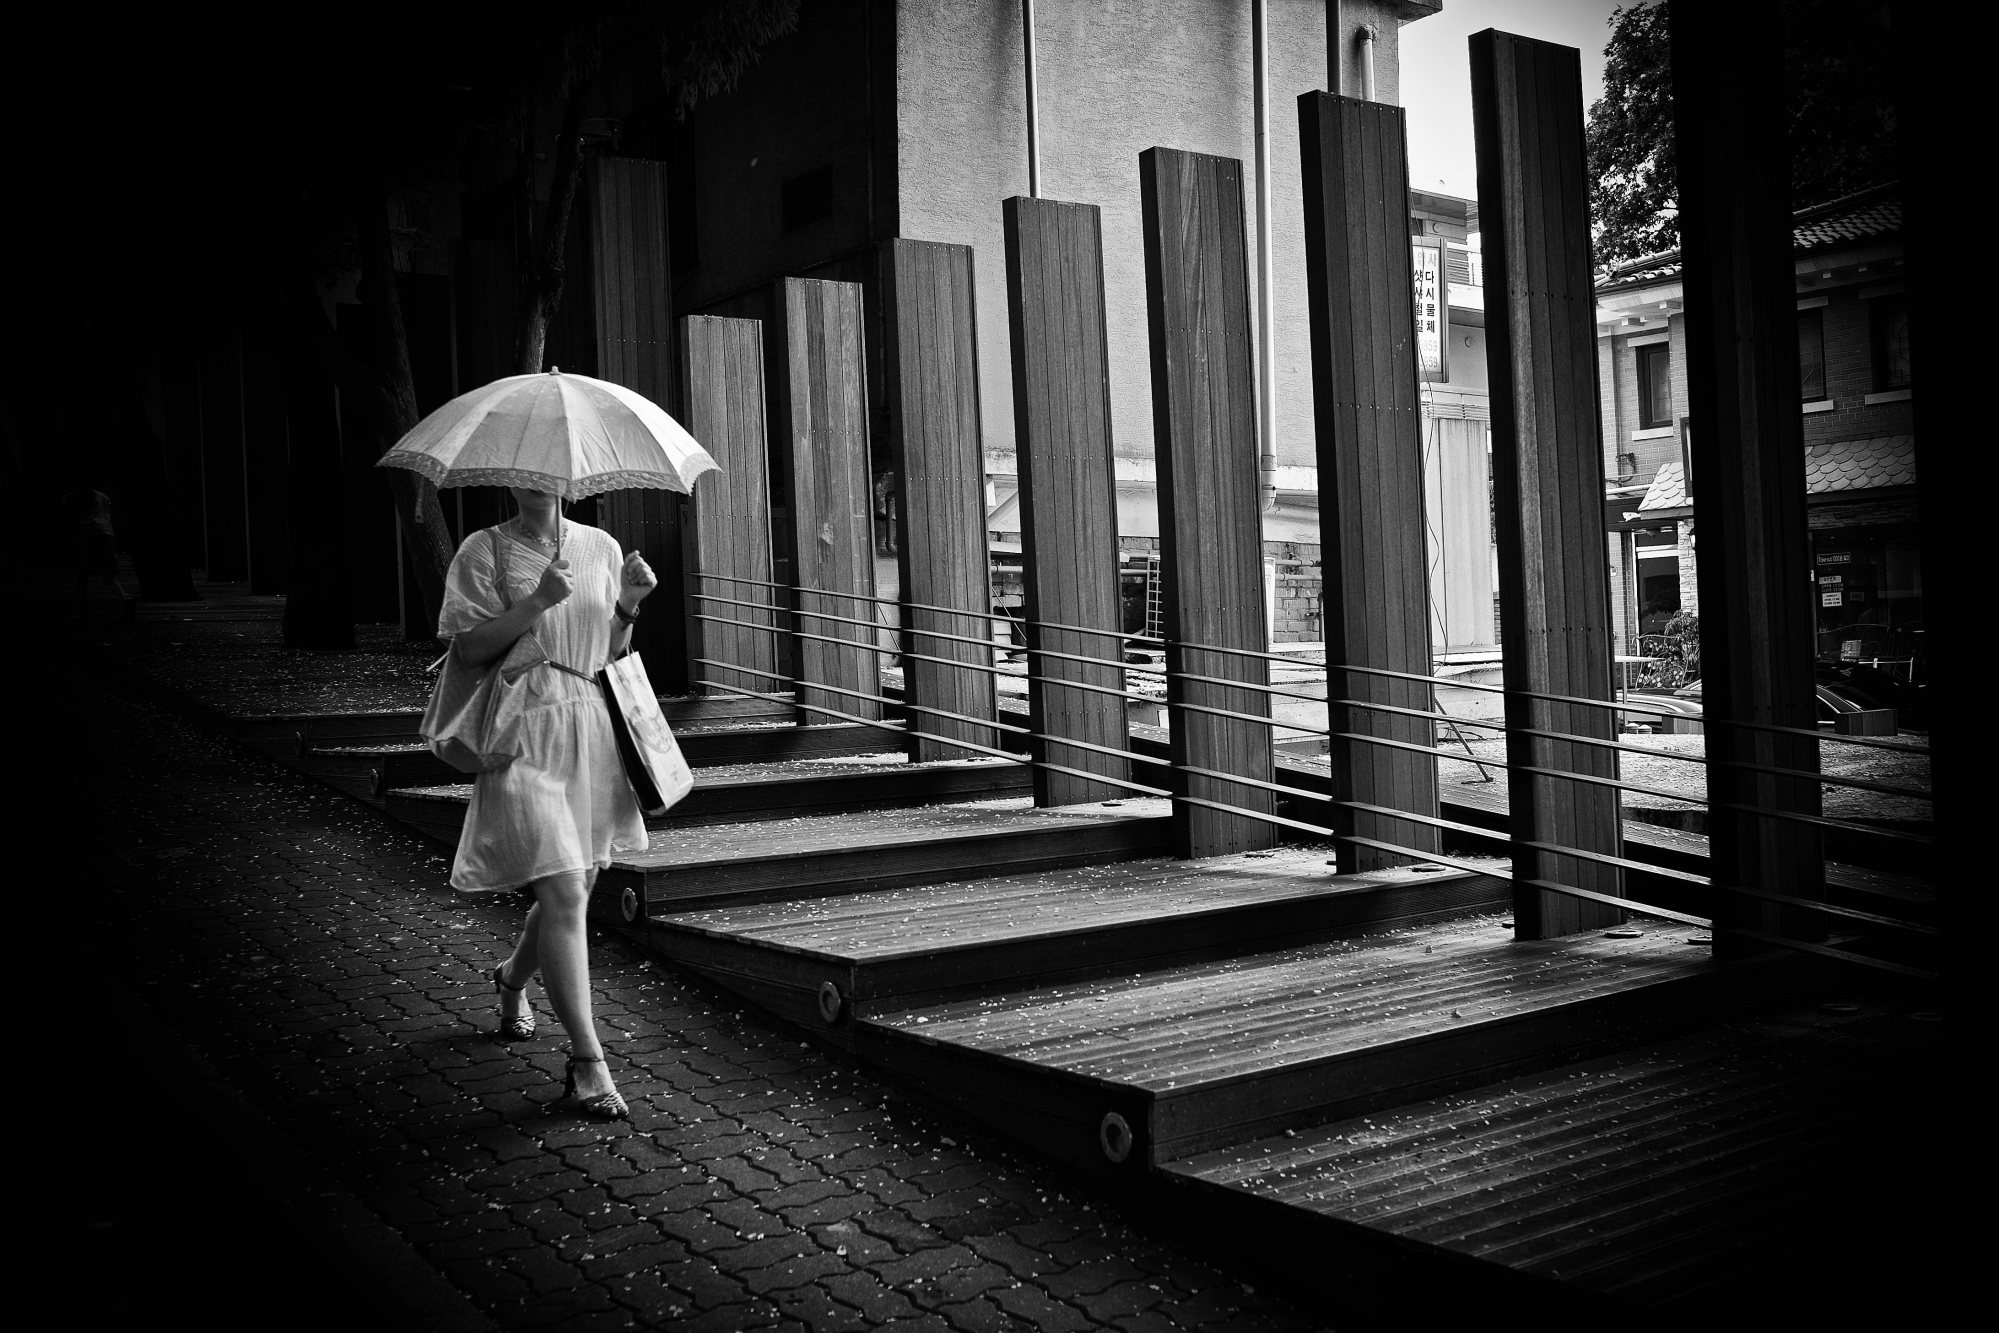 Woman and umbrella. Seoul, 2009